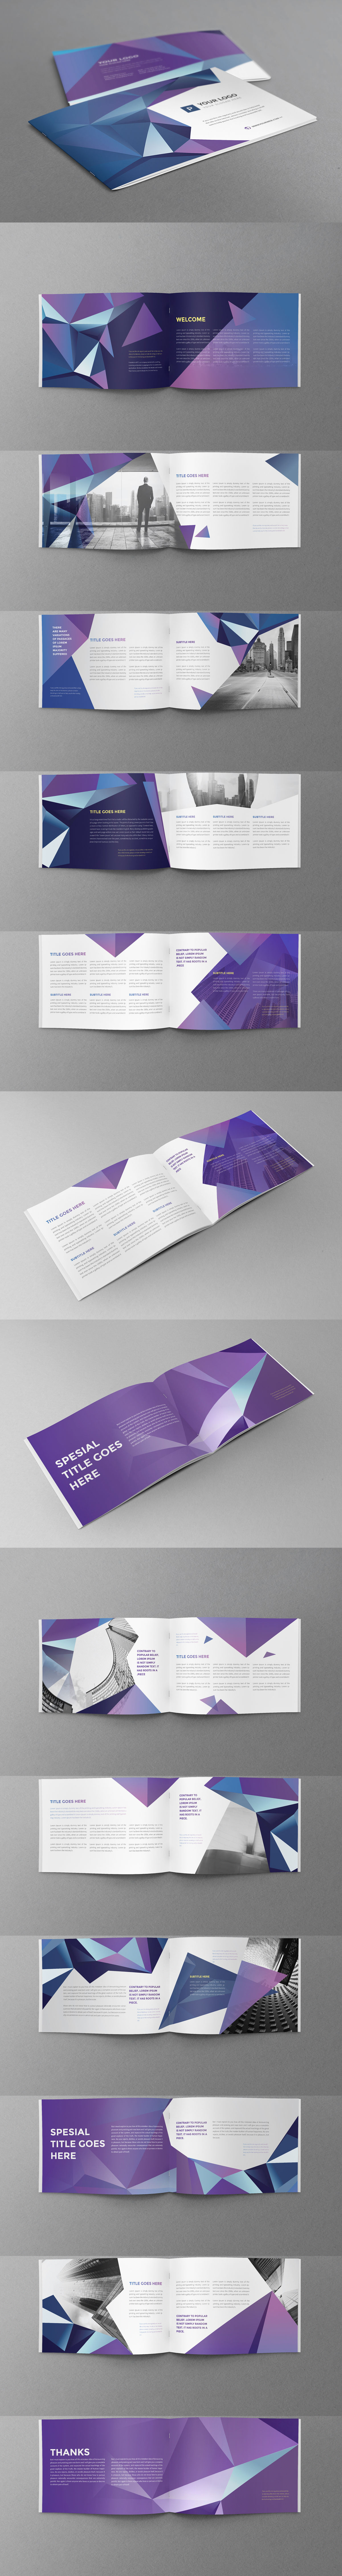 Cool Modern Brochure 32 Pages A5 Horizontal Template InDesign INDD ...